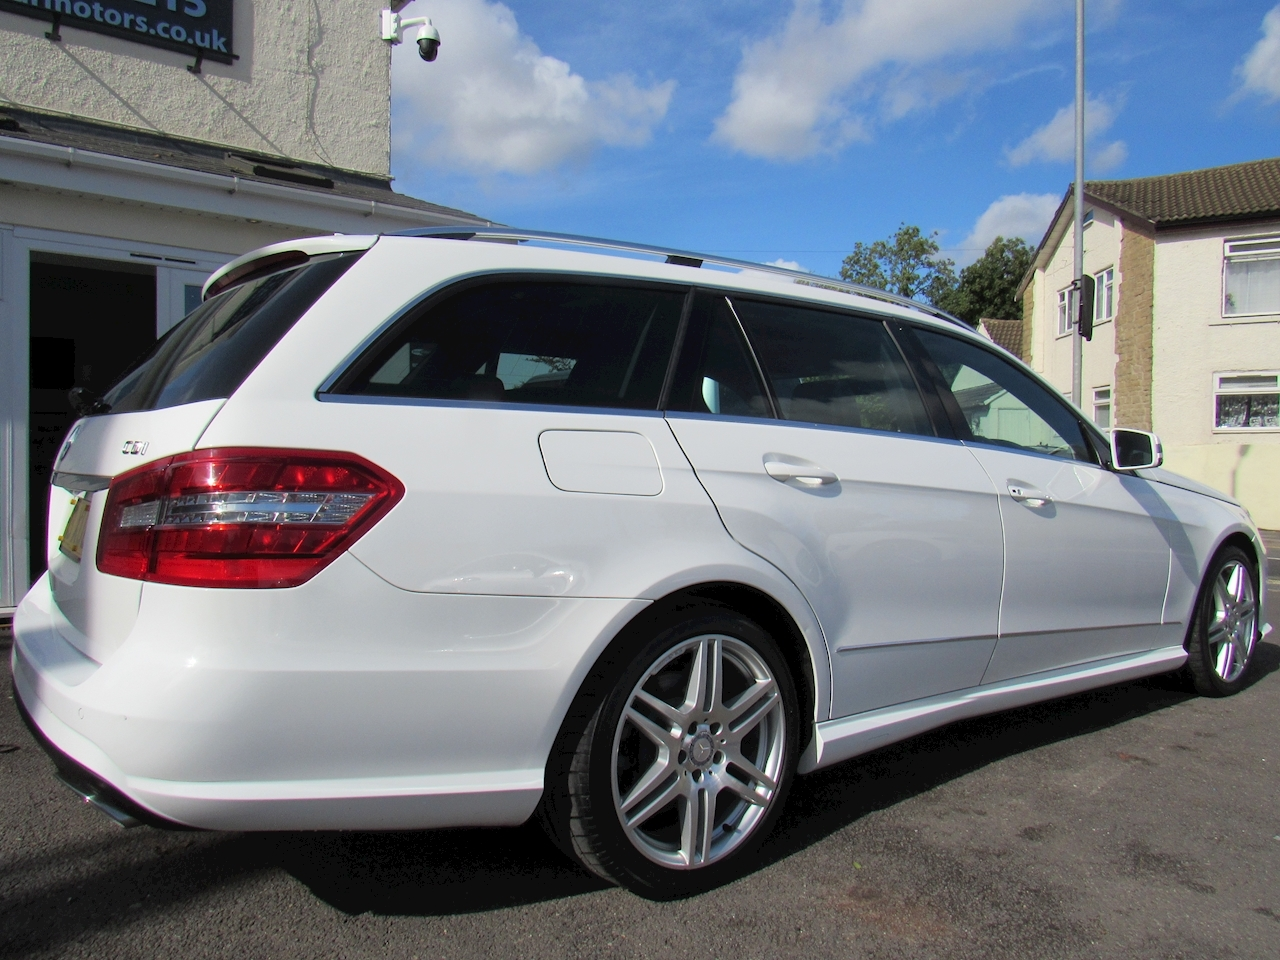 Mercedes-Benz E Class  Estate 2.2 Automatic Diesel